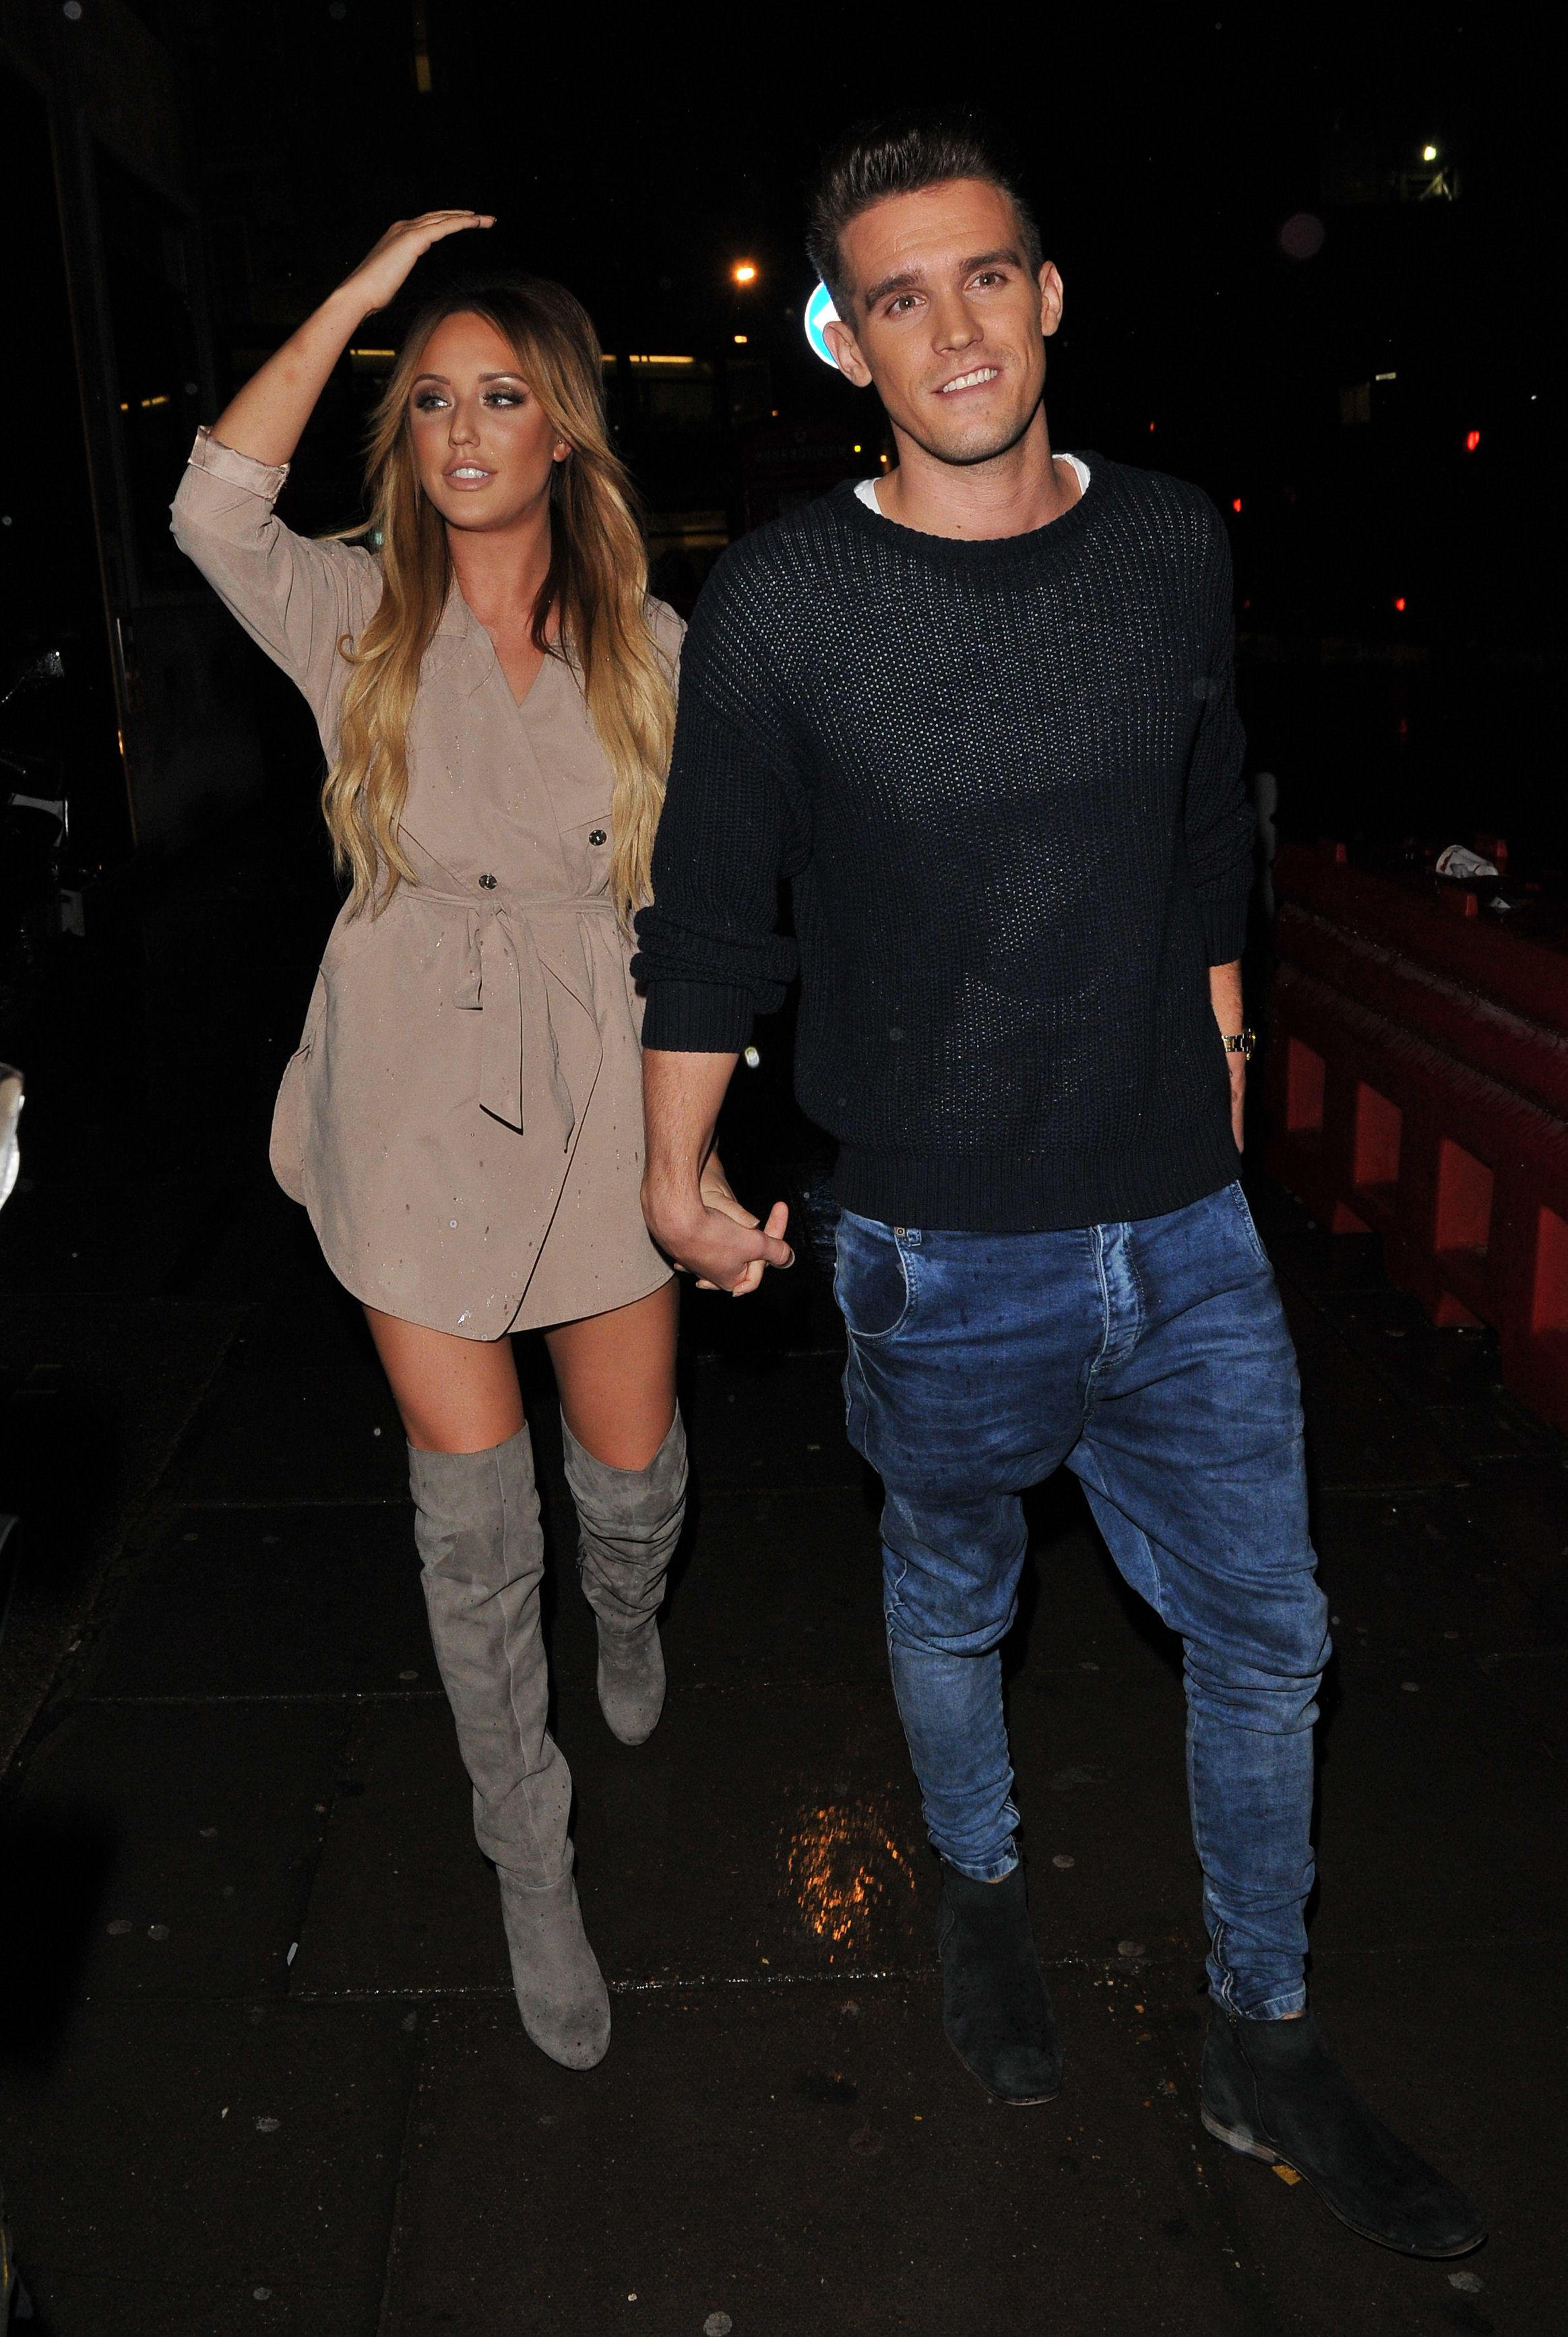 Charlotte and gaz dating cancun